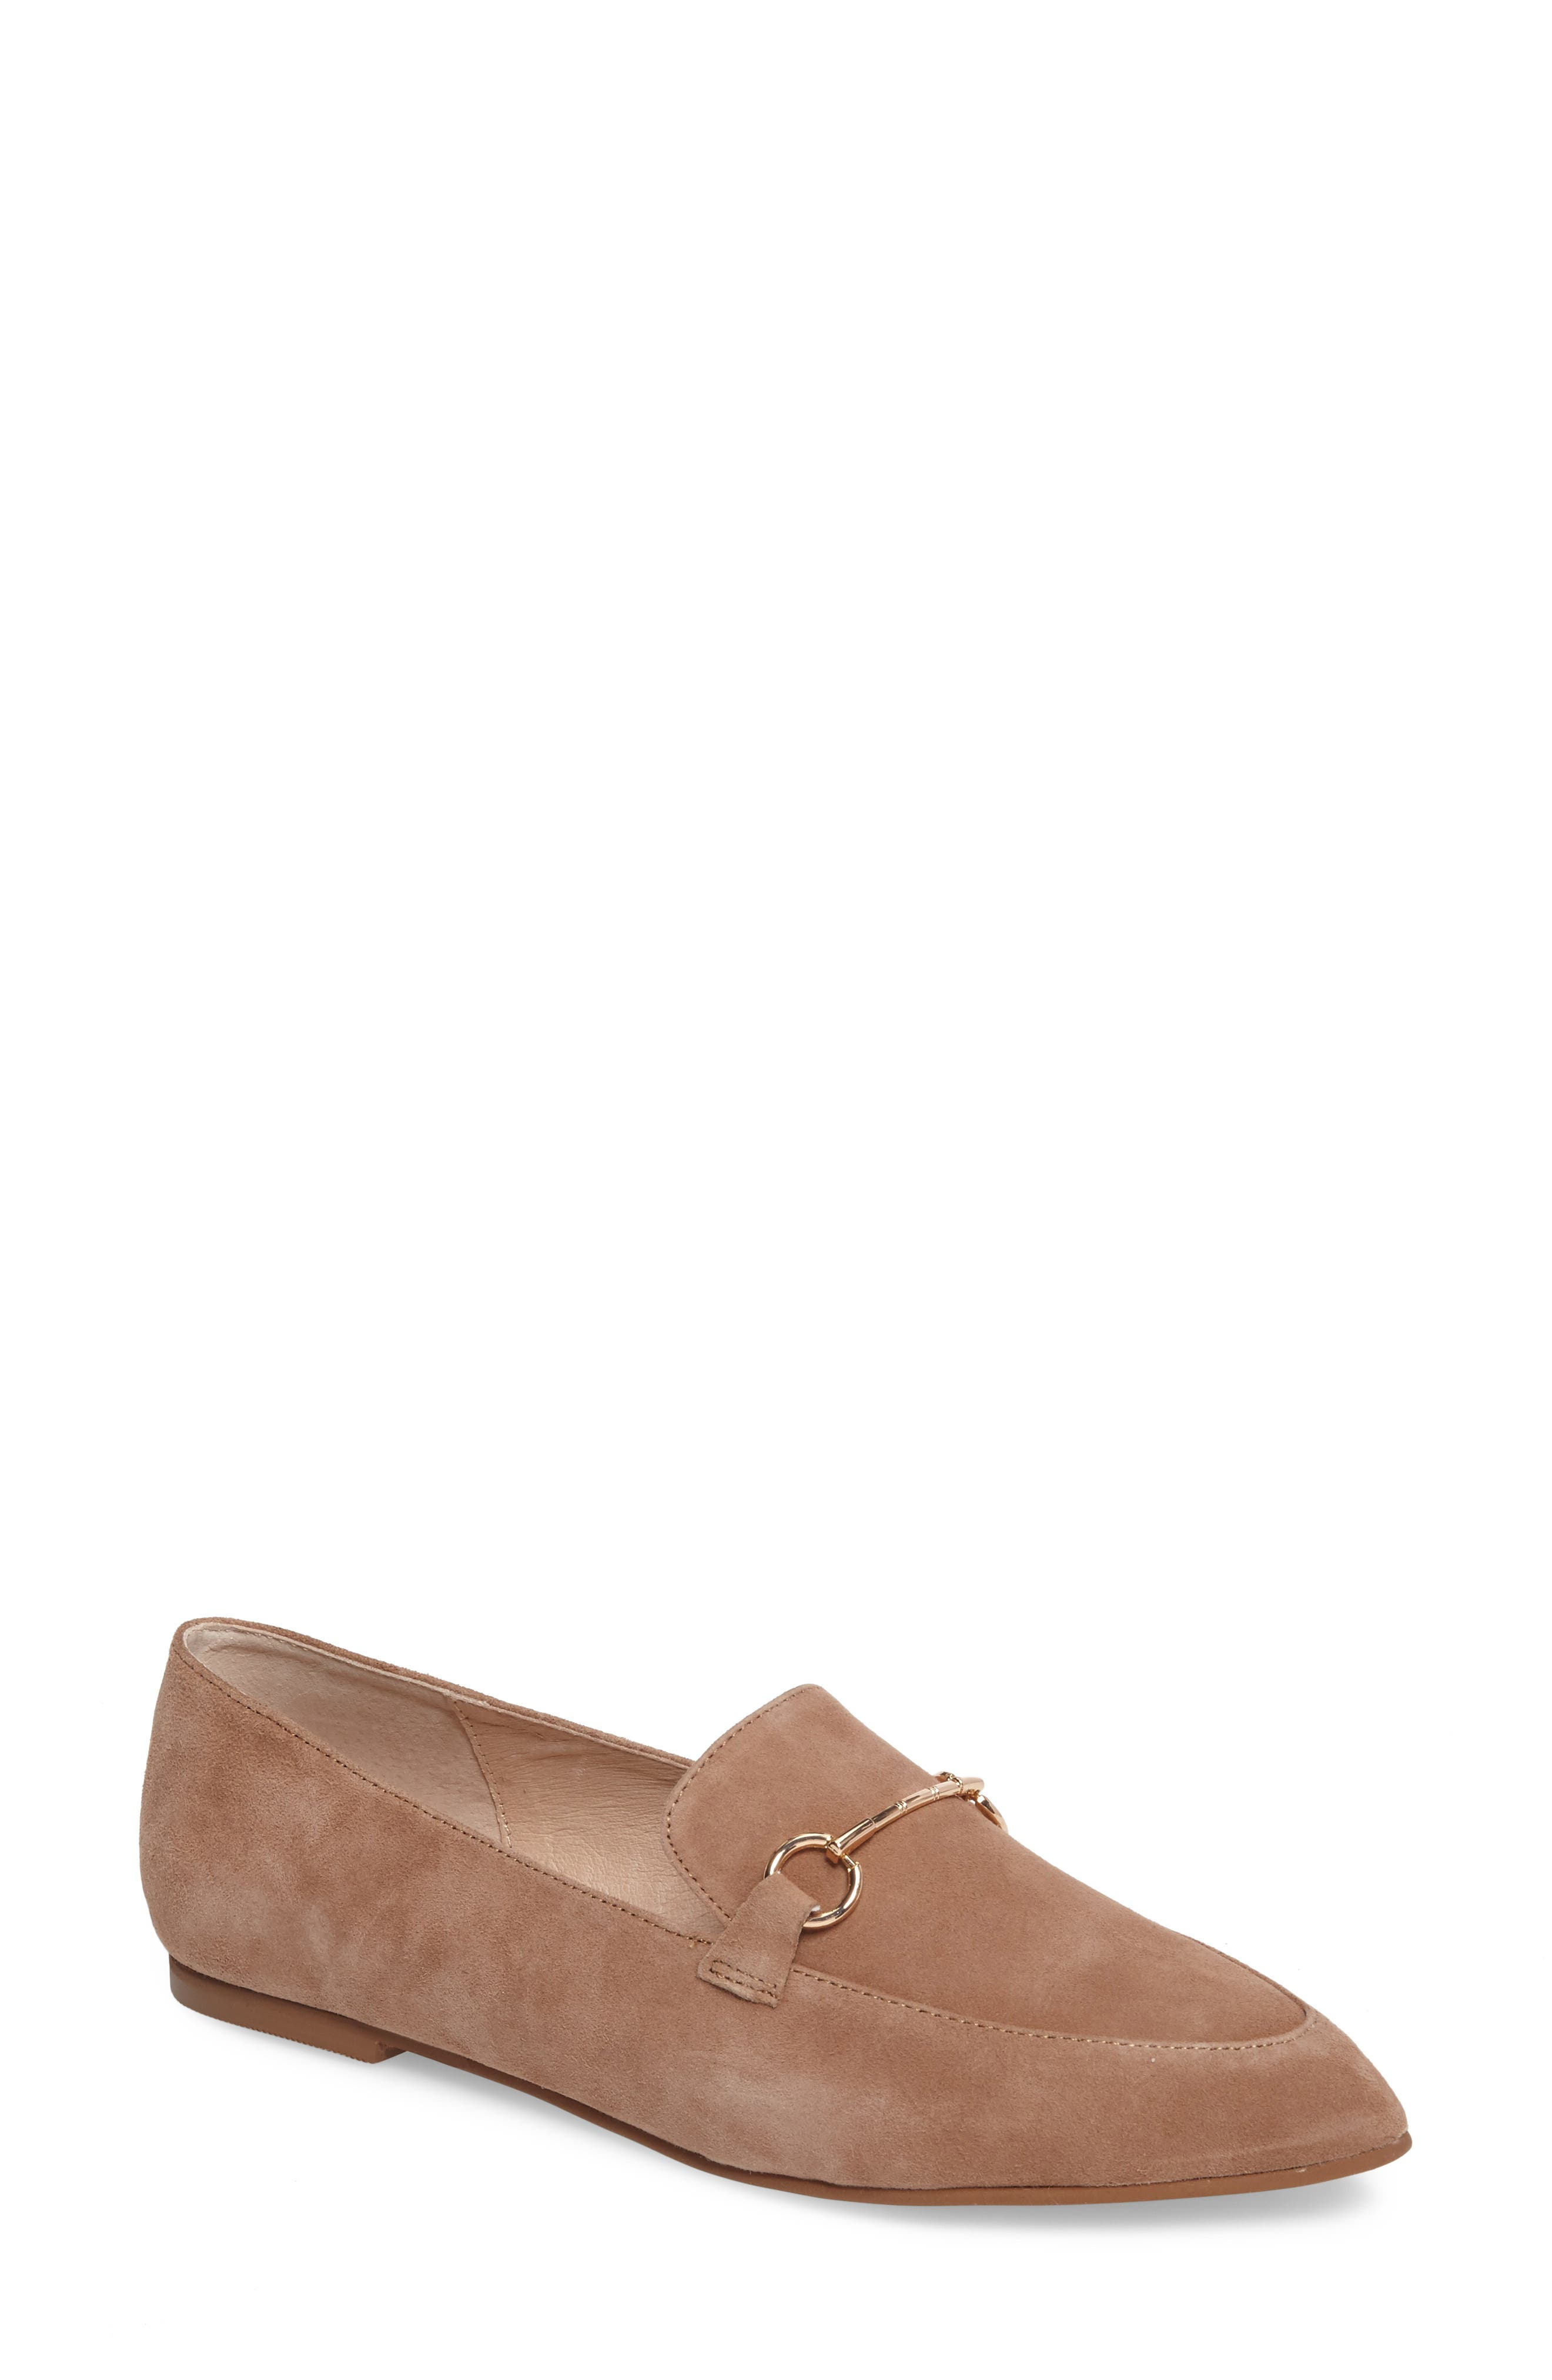 Cambrie Loafer Flat,                         Main,                         color, Clay Suede